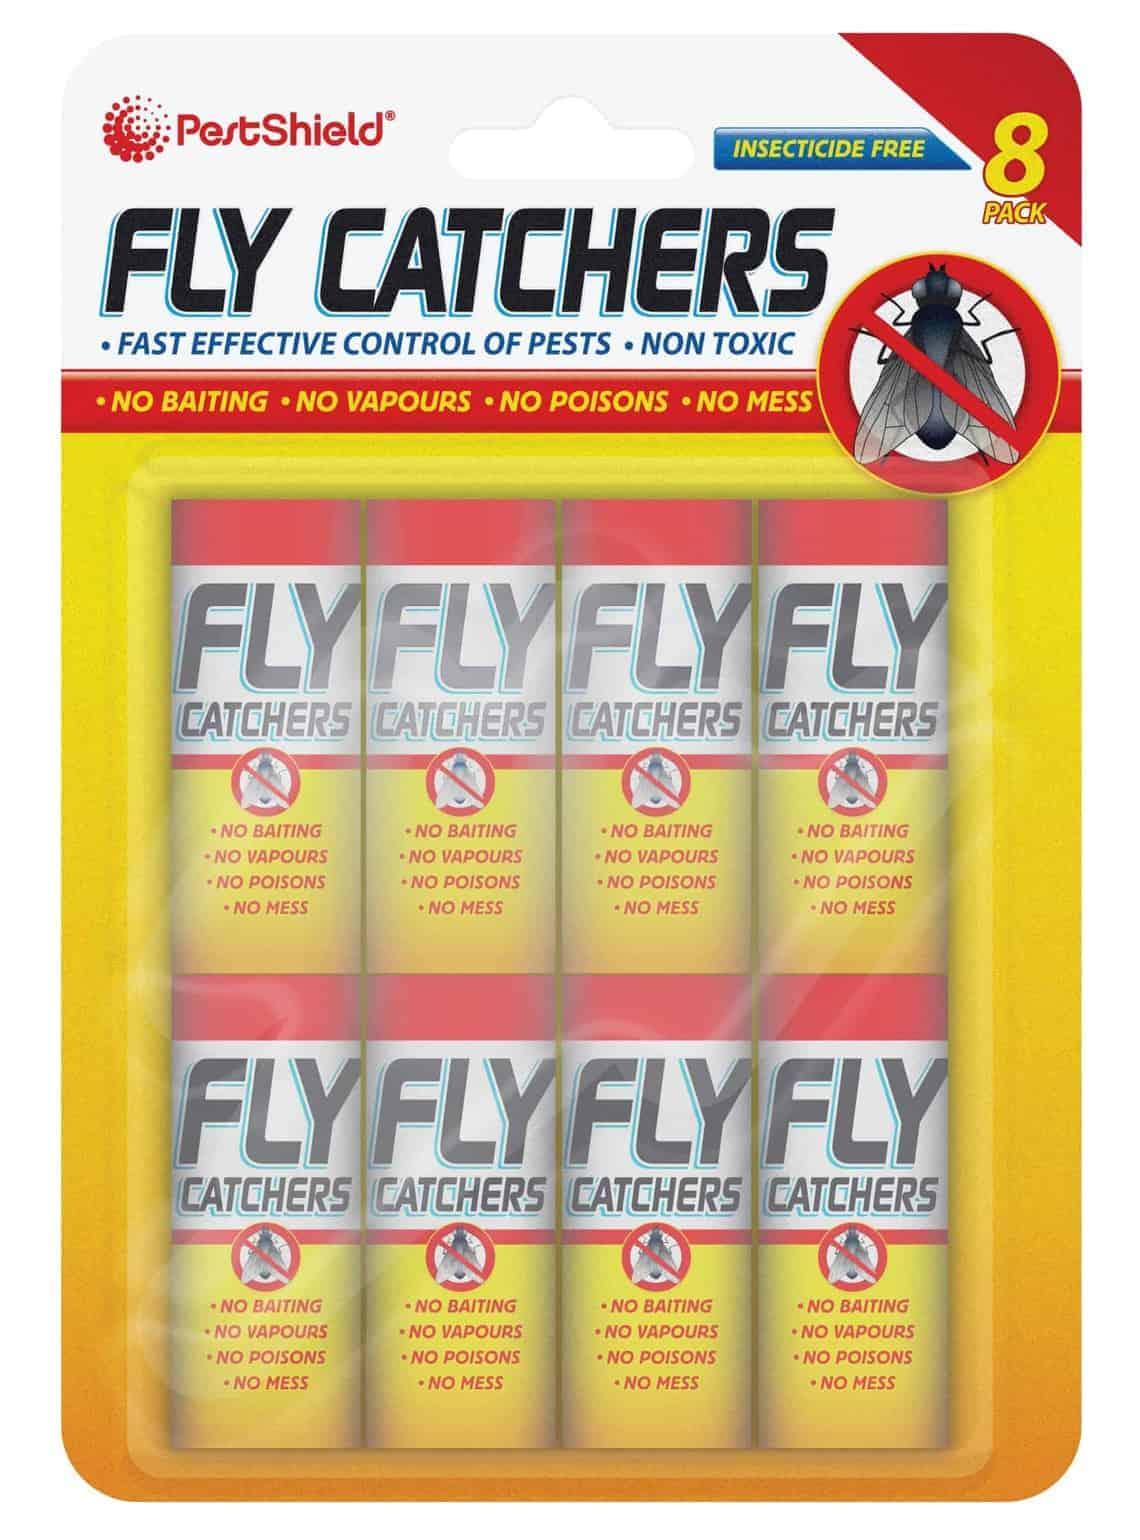 PestShield Fly Catchers-10Pk